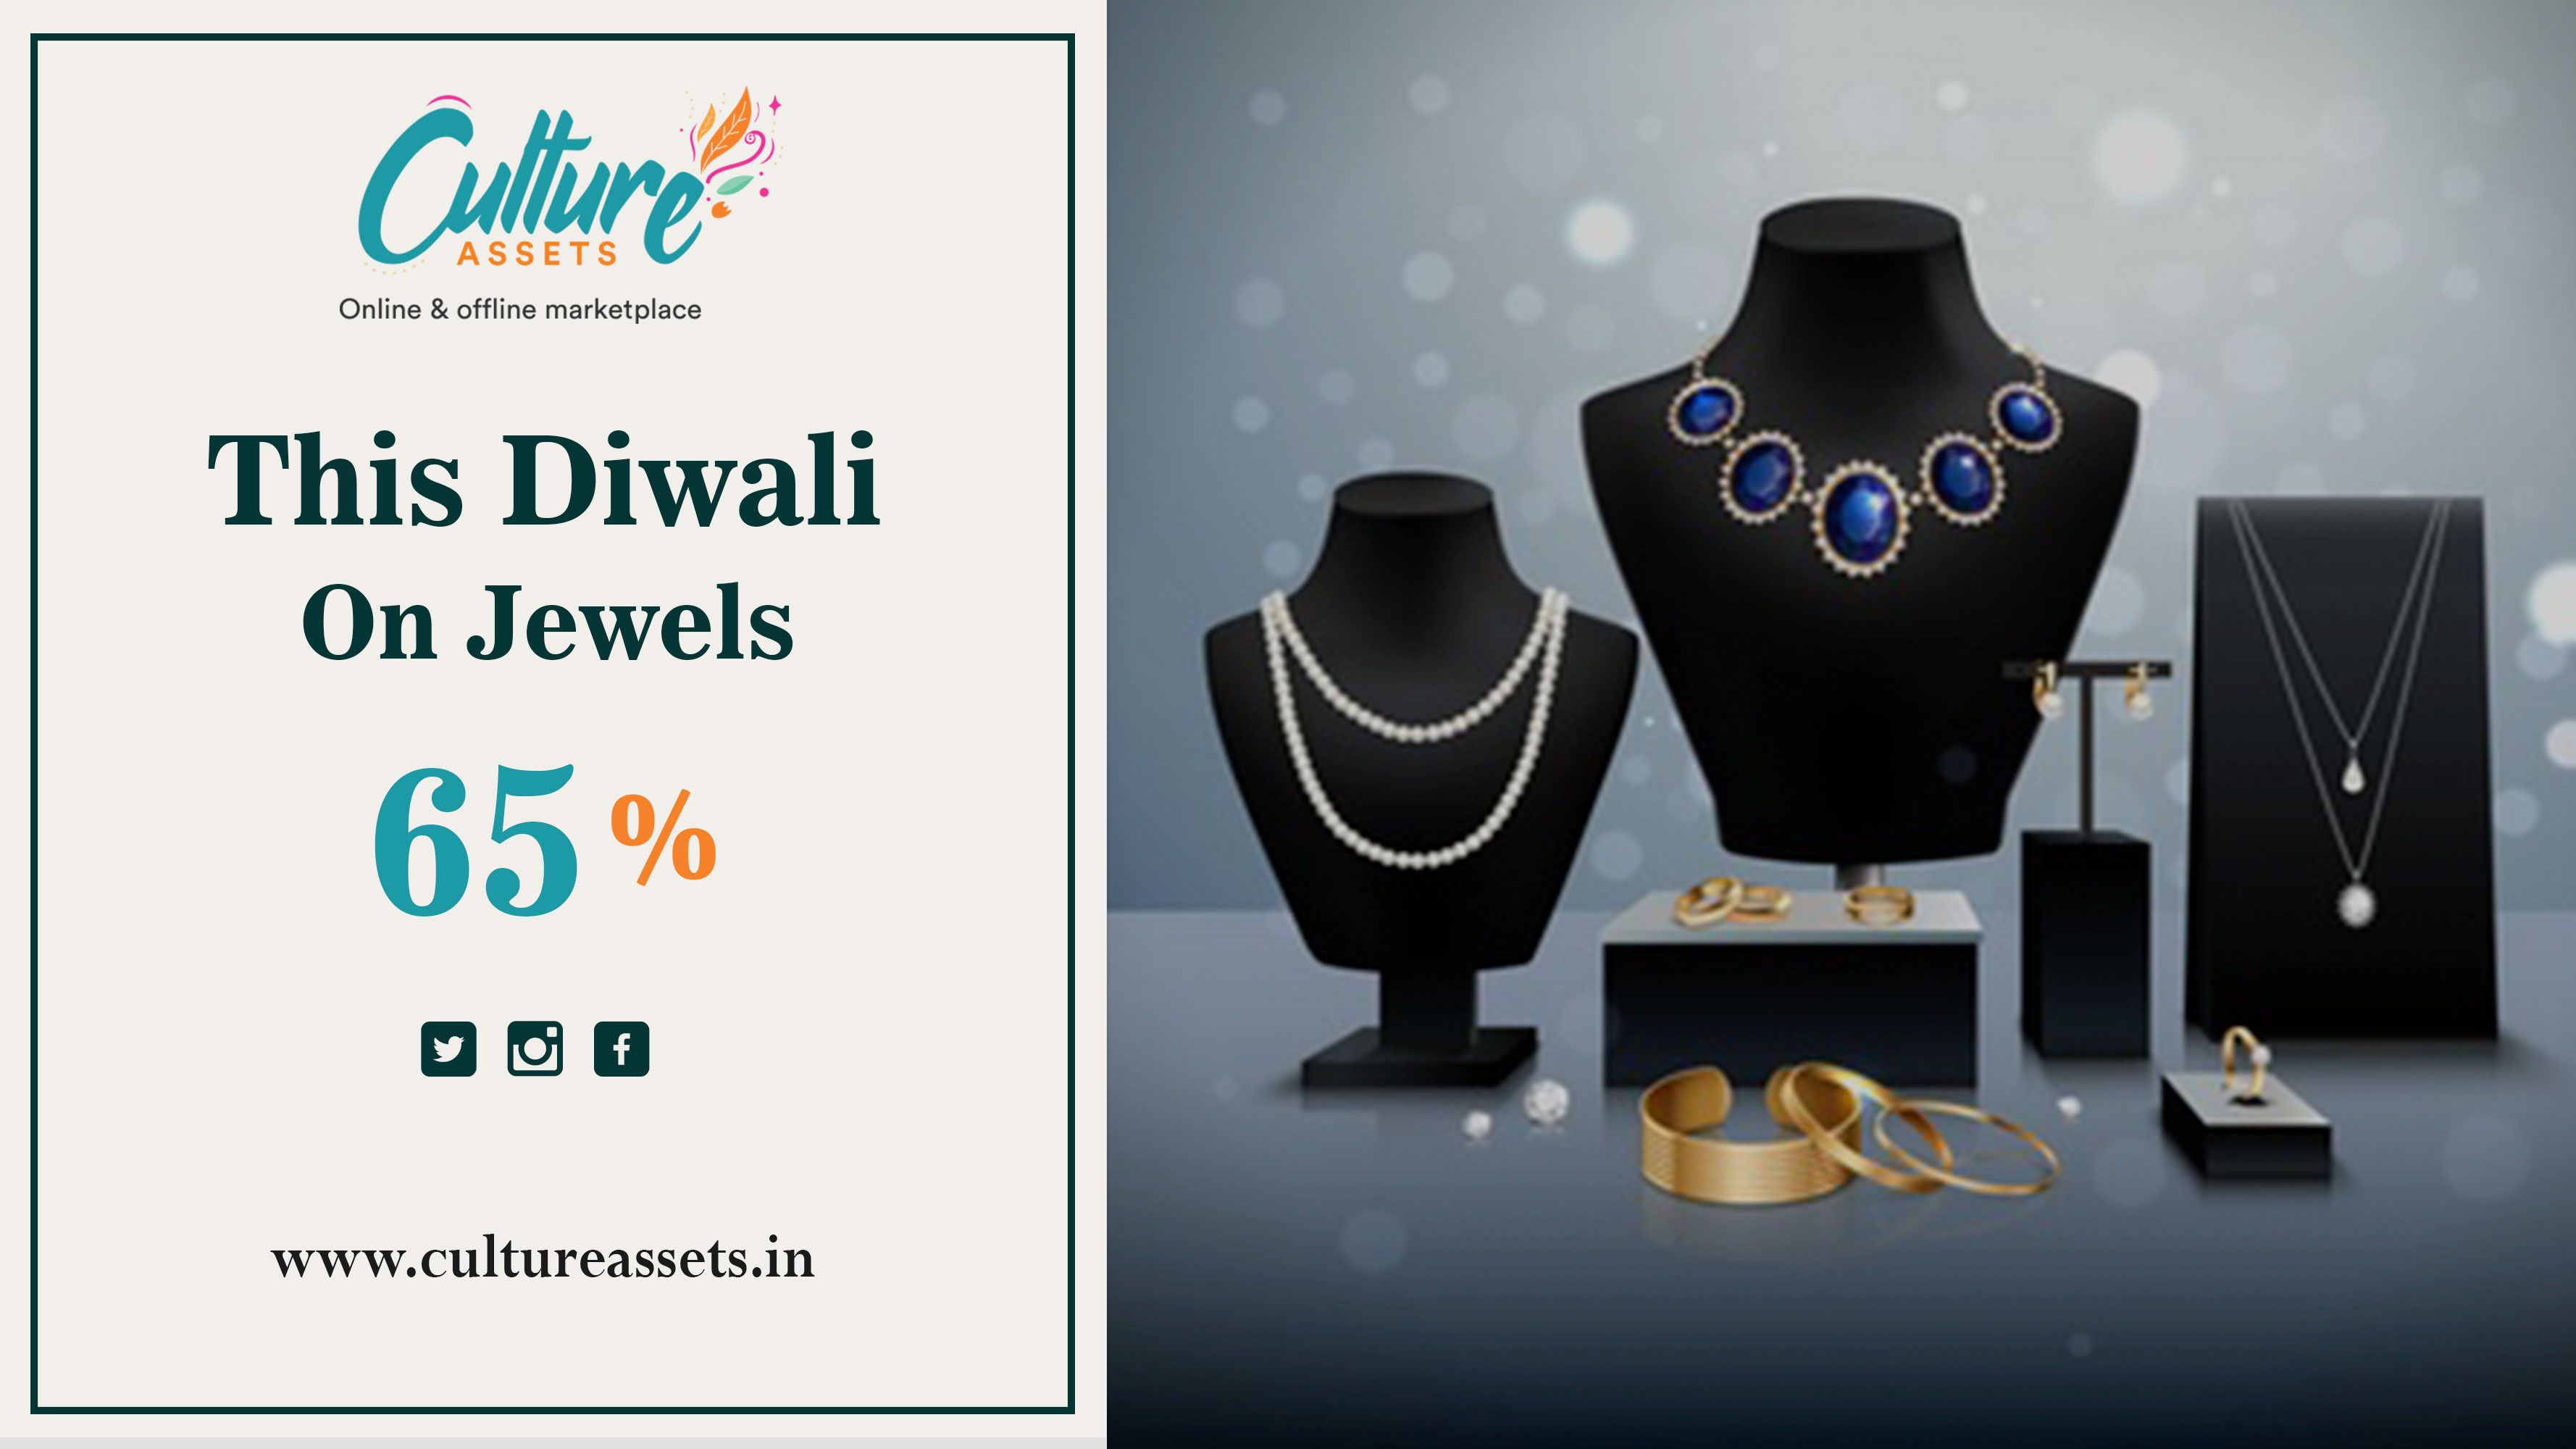 Indian Fashion Jewellery at its best price by Culture Assets. Diwali Offer ,get upto 65% off on ethnic jewellery. Offer coming soon ,Stay Tuned! • • • #jewelry #ethnicjewellery #fashion #ethnicwear #traditional #indianwear #onlineshopping #style #womenfashion #fashion #style #womenstyle #ethnicwear #fashion #indianwear #saree #ethnic #onlineshopping #indianfashion #indianwedding #instafashion #traditional #tiktok #Tiktokclone #videosharingapp #livestreaming #ecommerce